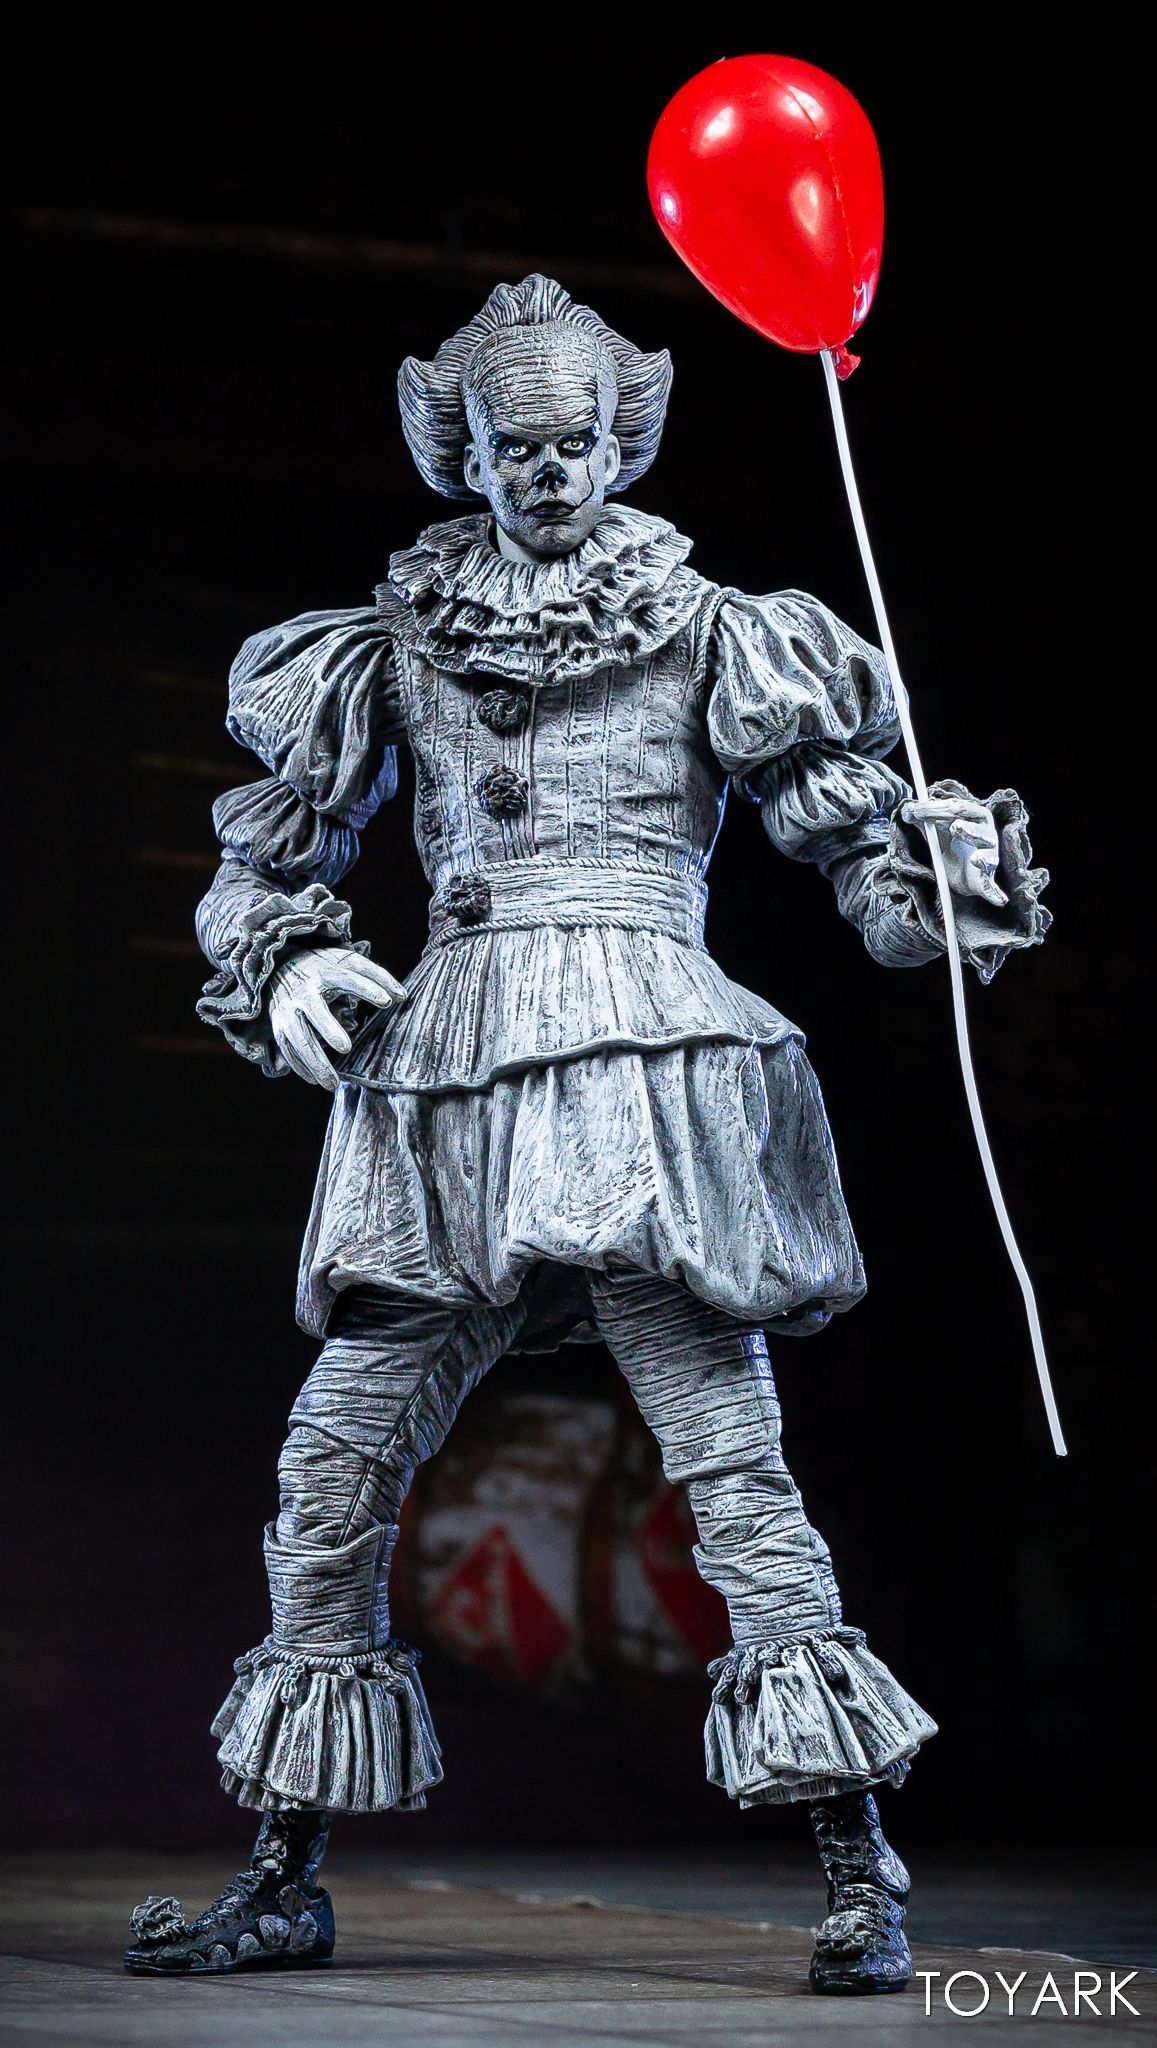 https://news.toyark.com/wp-content/uploads/sites/4/2019/07/SDCC-2019-Etched-Pennywise-NECA-014.jpg